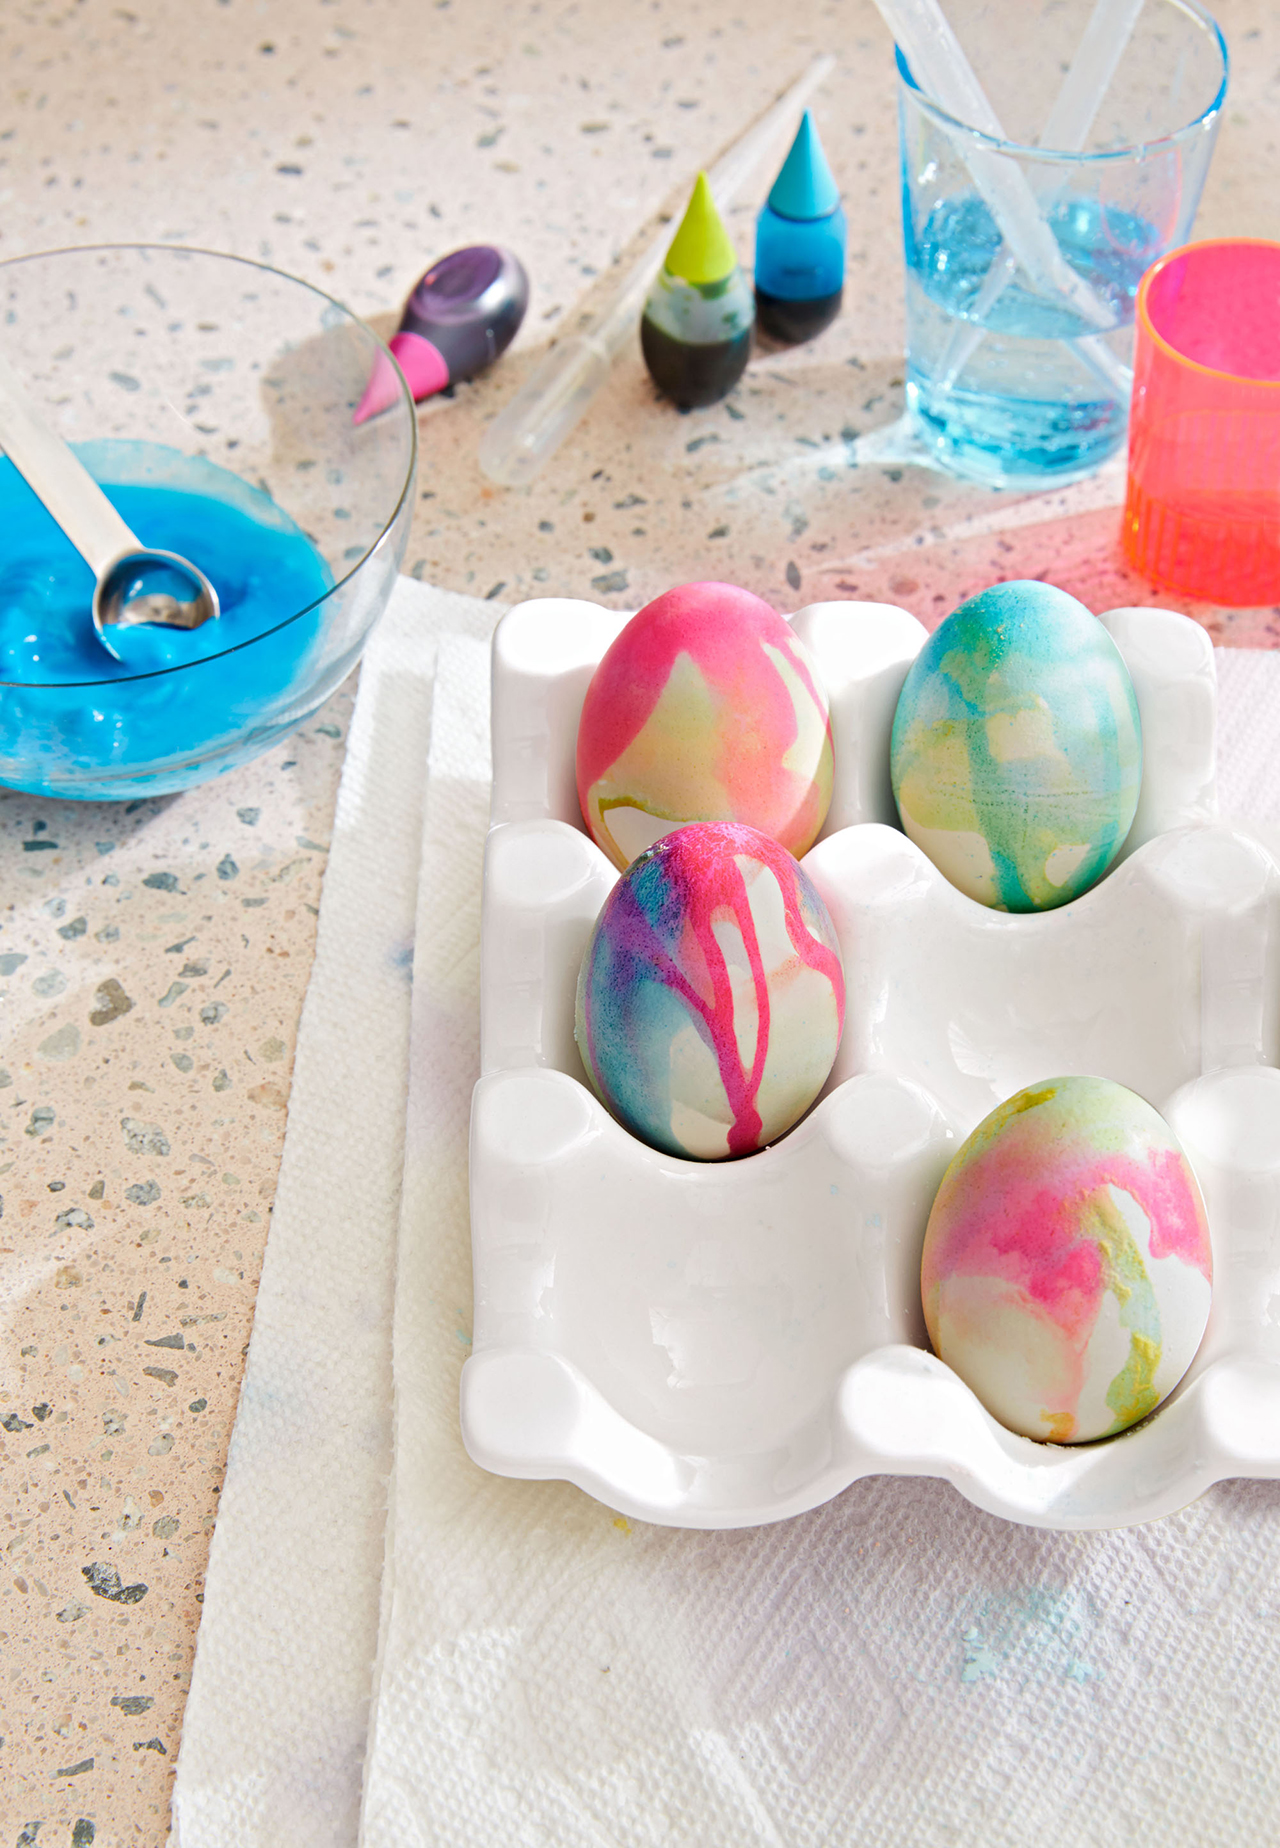 multi-colored easter egg dye in egg carton